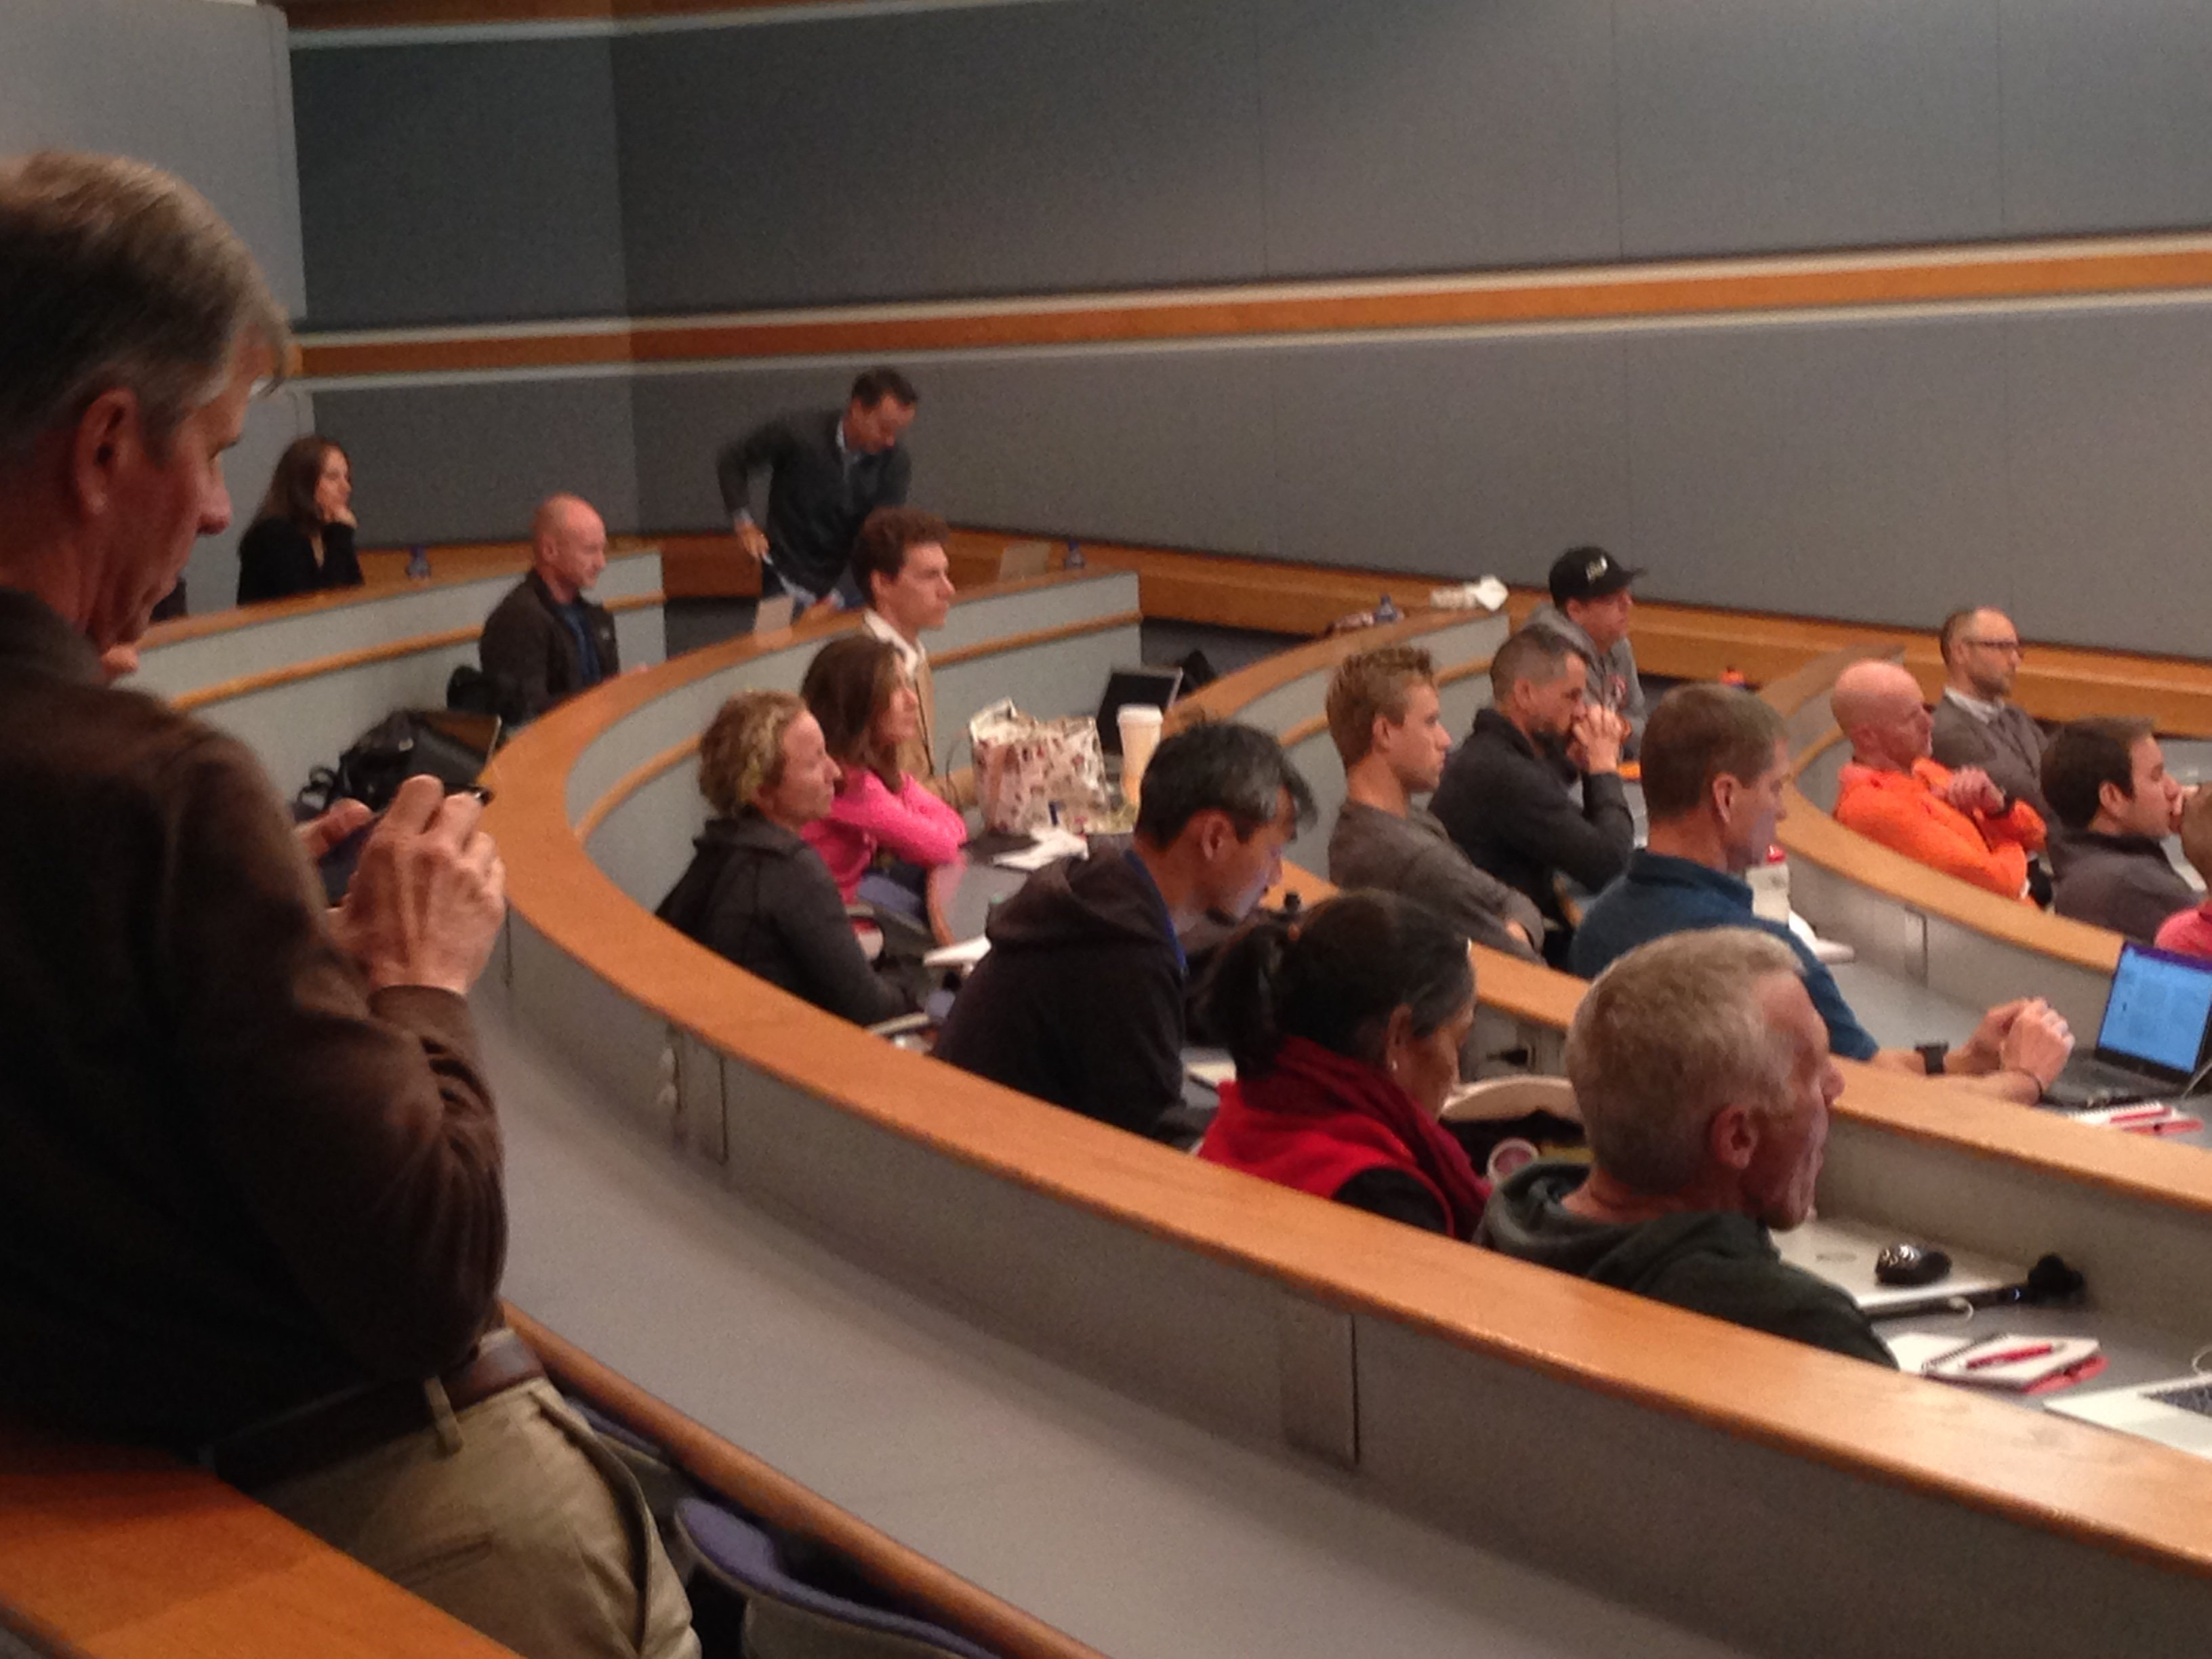 audience at the 2016 ITP4ES conference, Andy Coggan, Tim Cusick, Amber Neben, Dean Golich